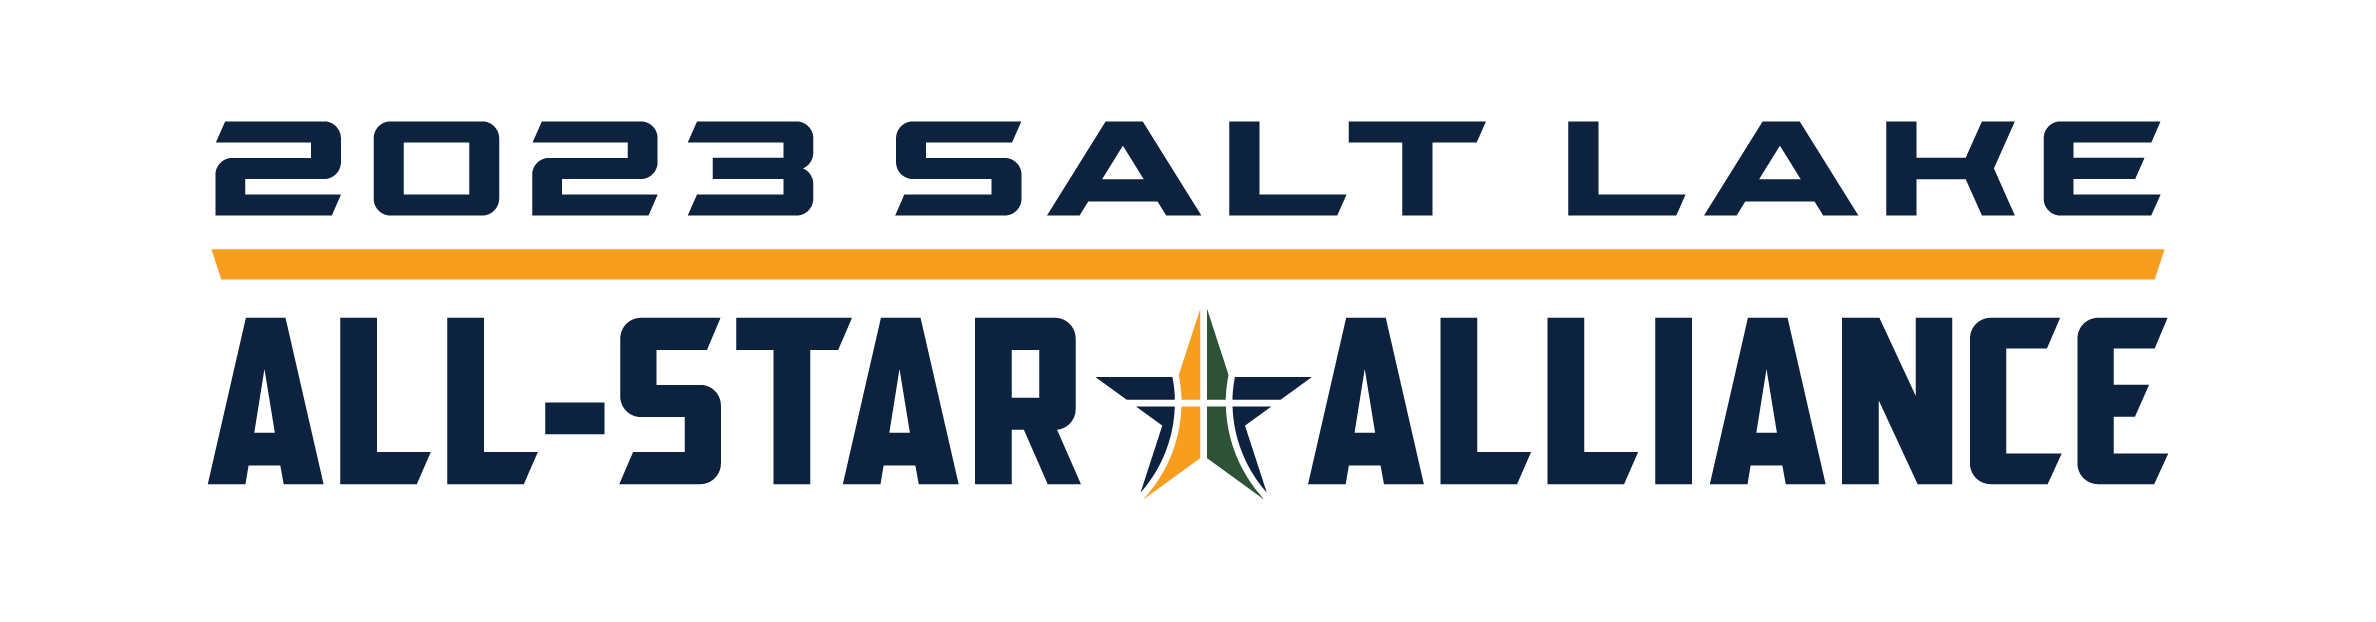 2023 Salt Lake All-Star Alliance